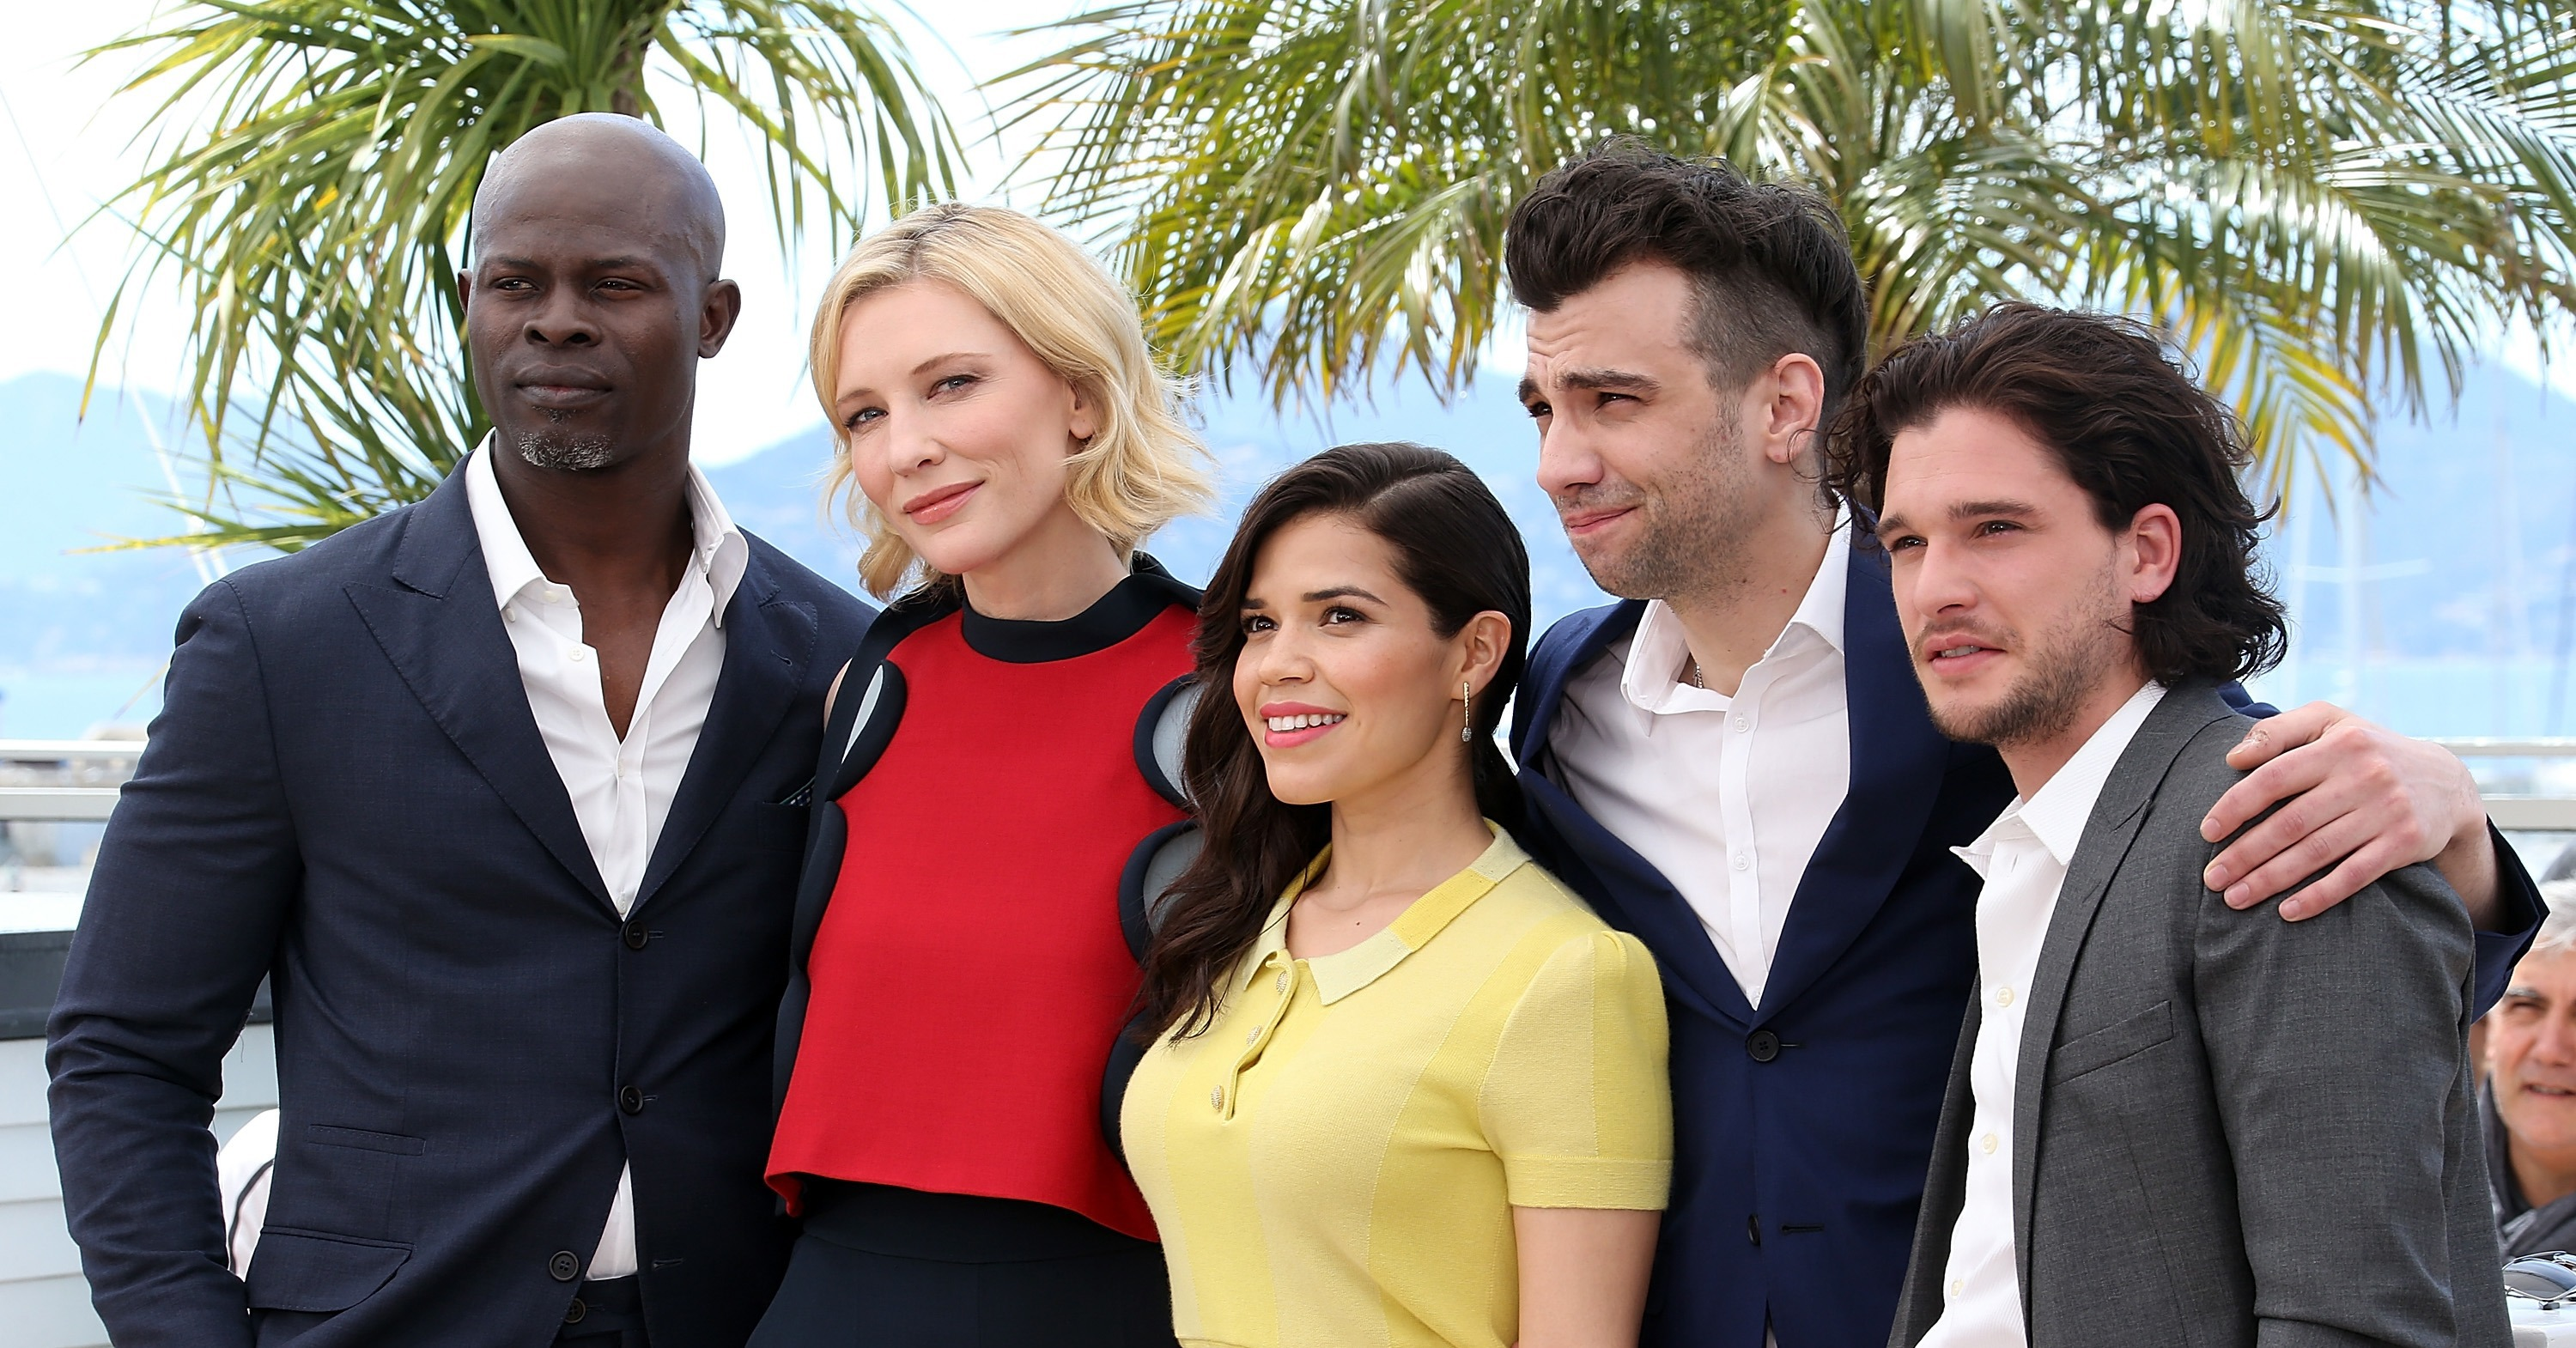 The Cast Of How To Train Your Dragon 2 Met Up For A Sunny Photo Op